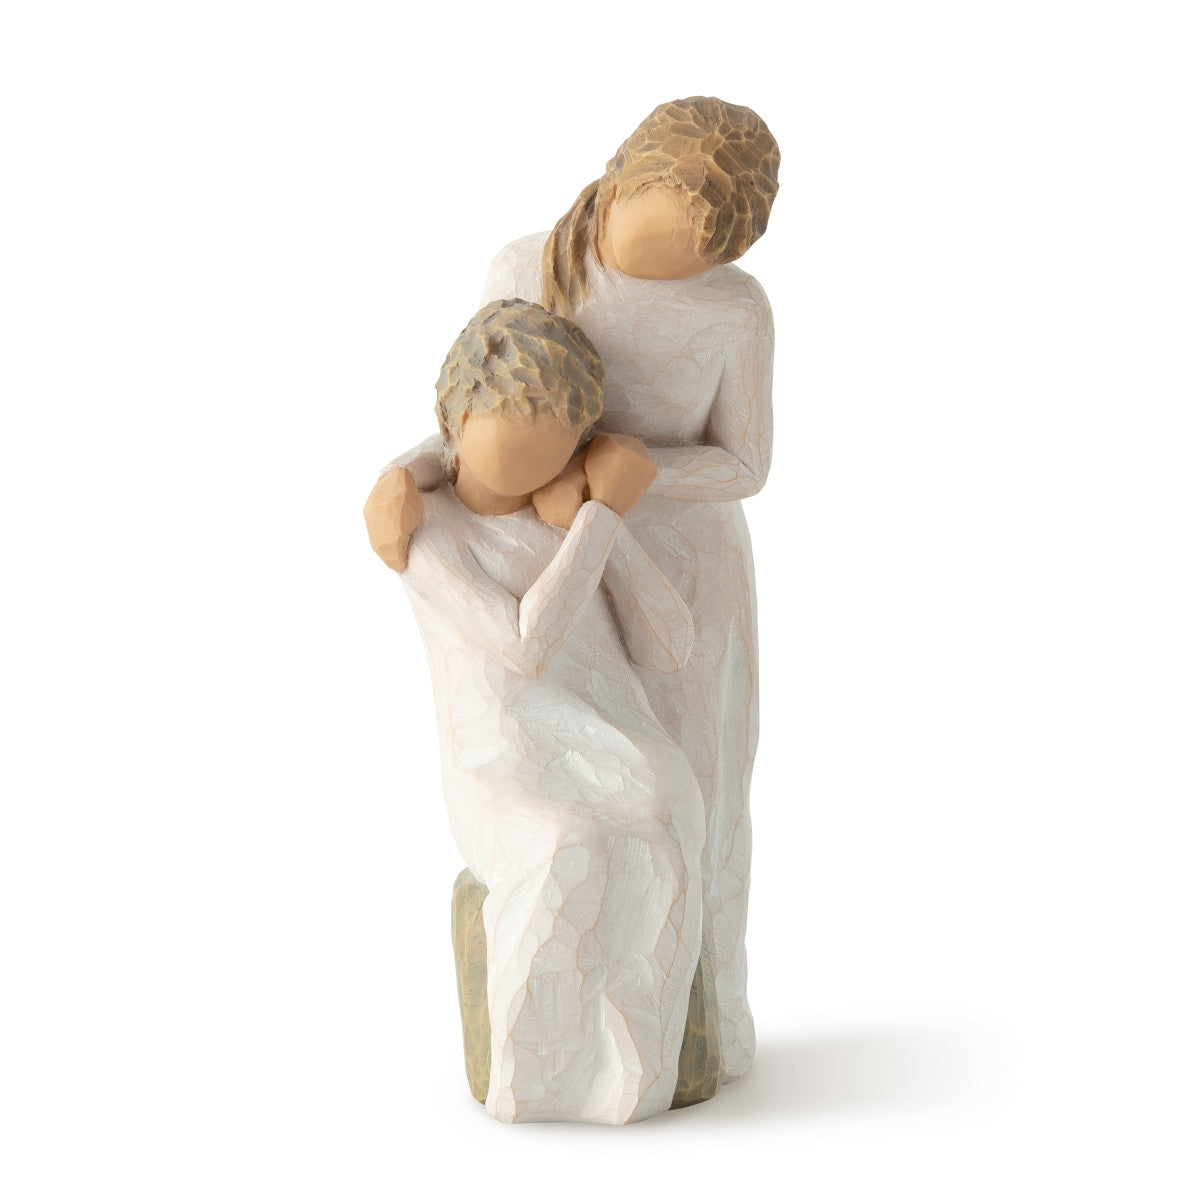 Loving My Mother Willow Tree® Figurine Sculpted by Susan Lordi